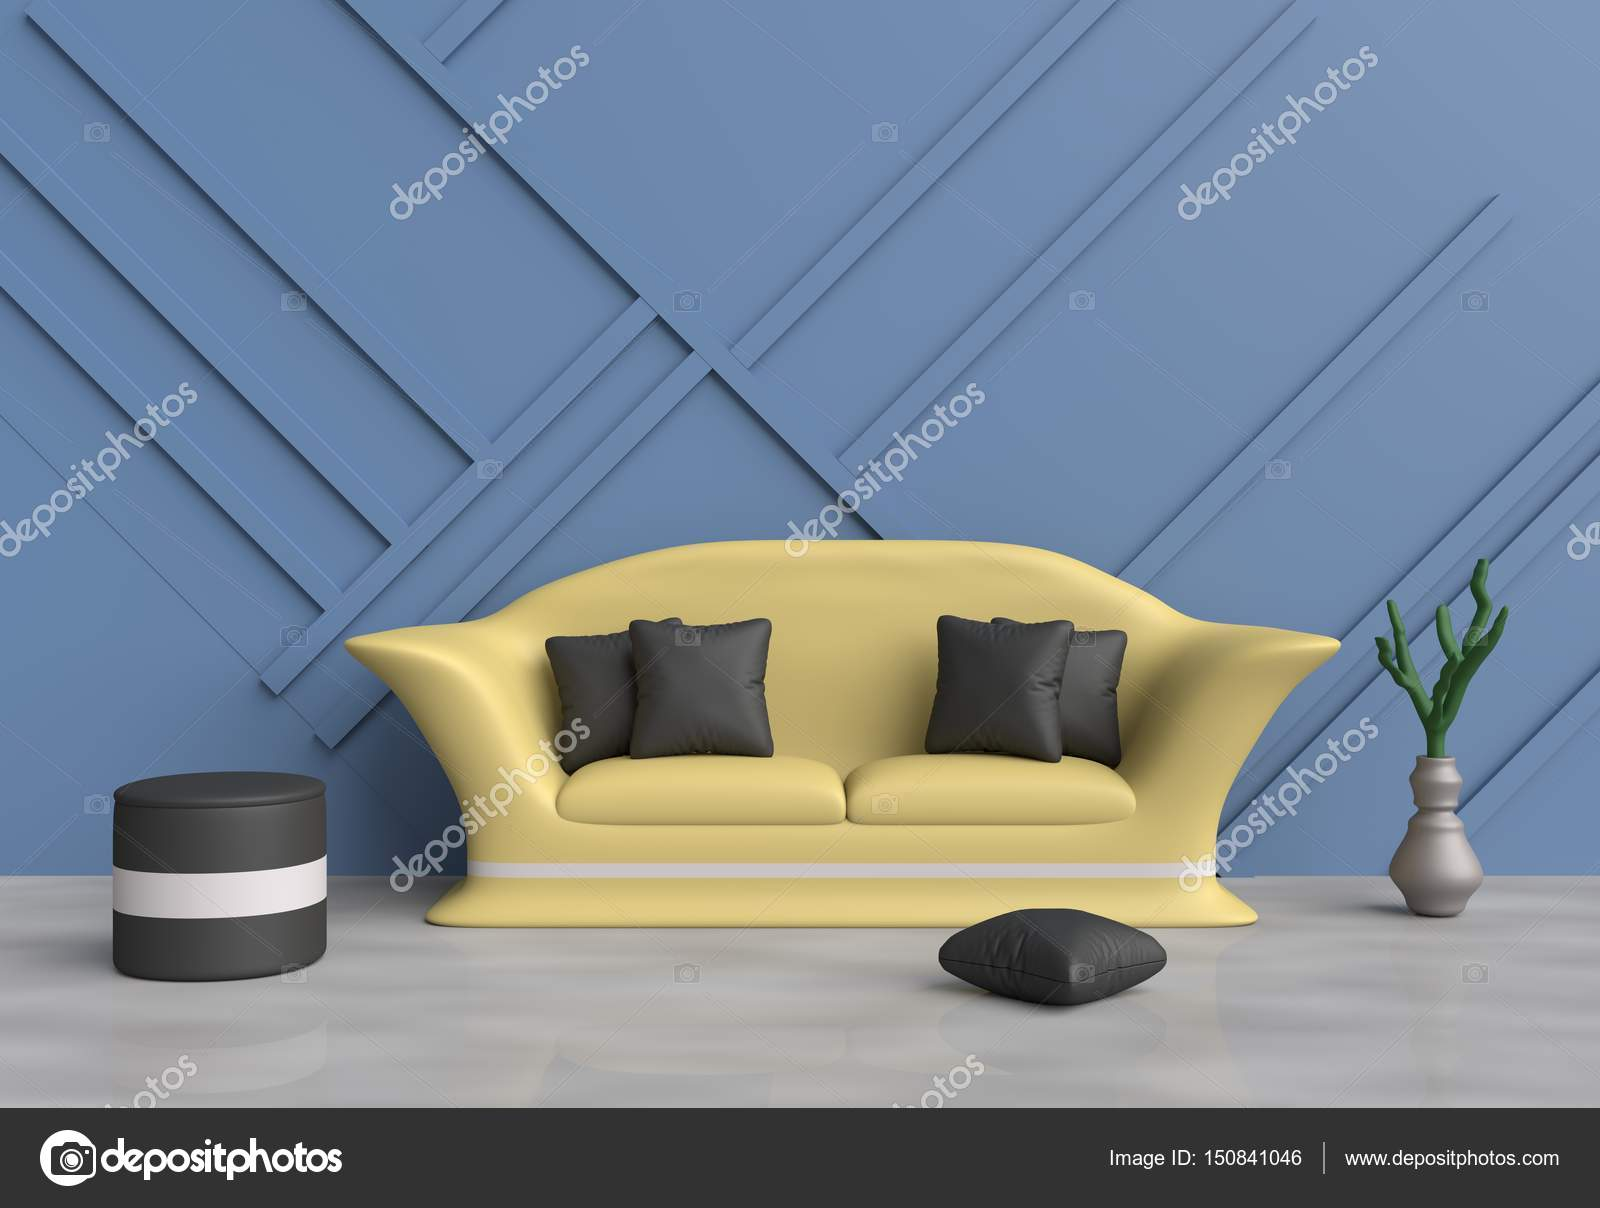 Blue living room are decorated with yellow sofa black pillows